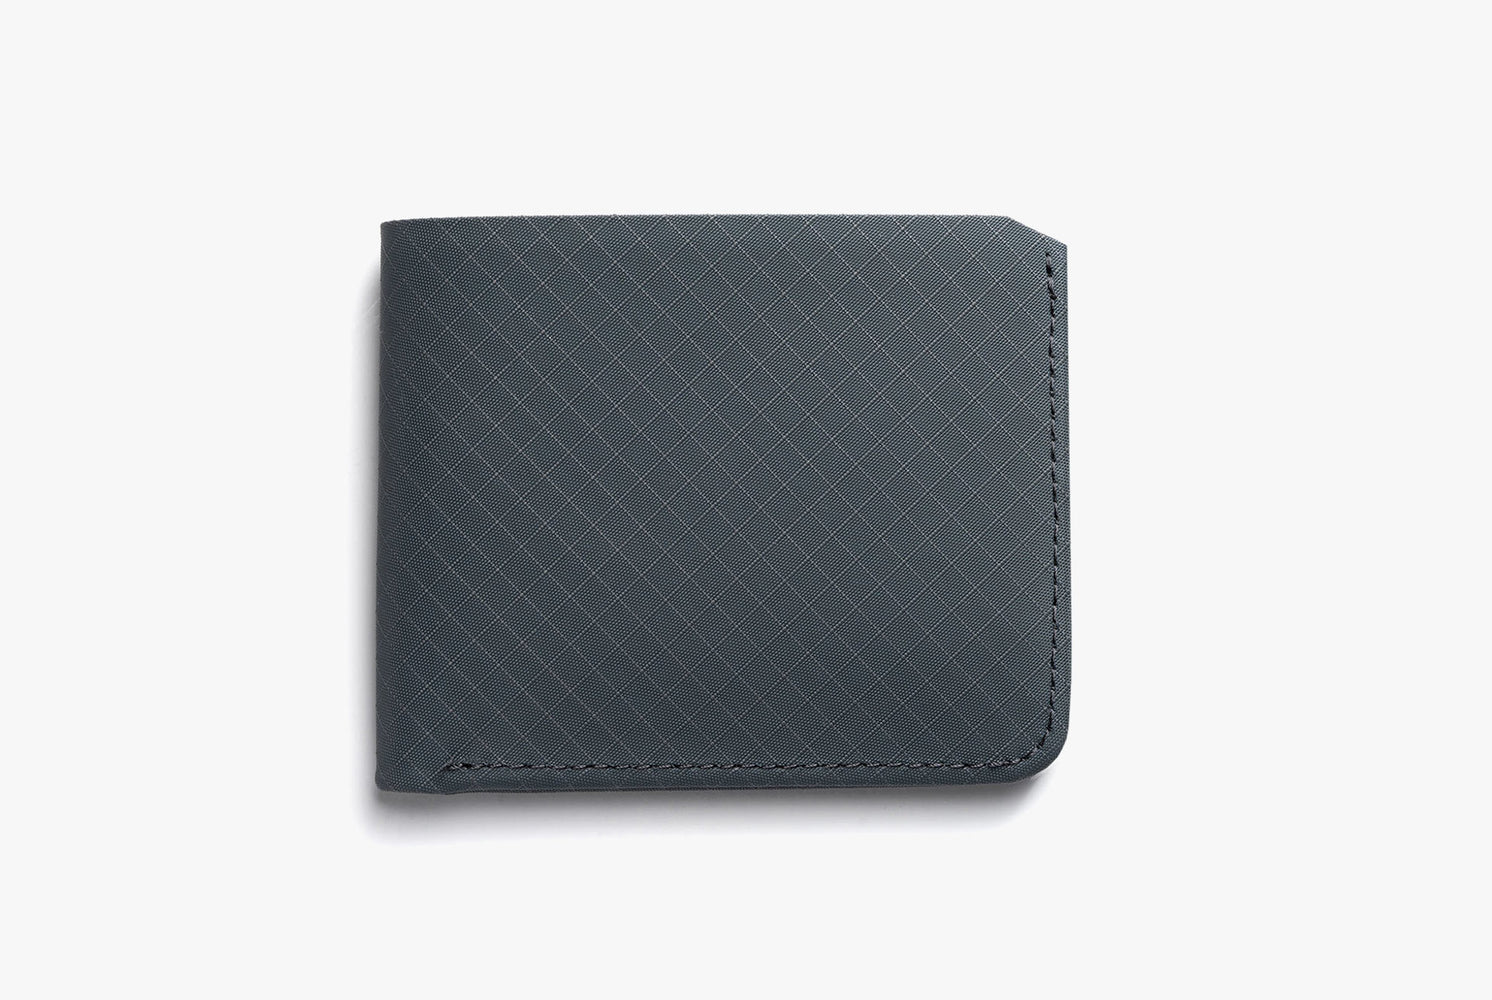 Slate - Pioneer Division Billfold Wallet - Closed